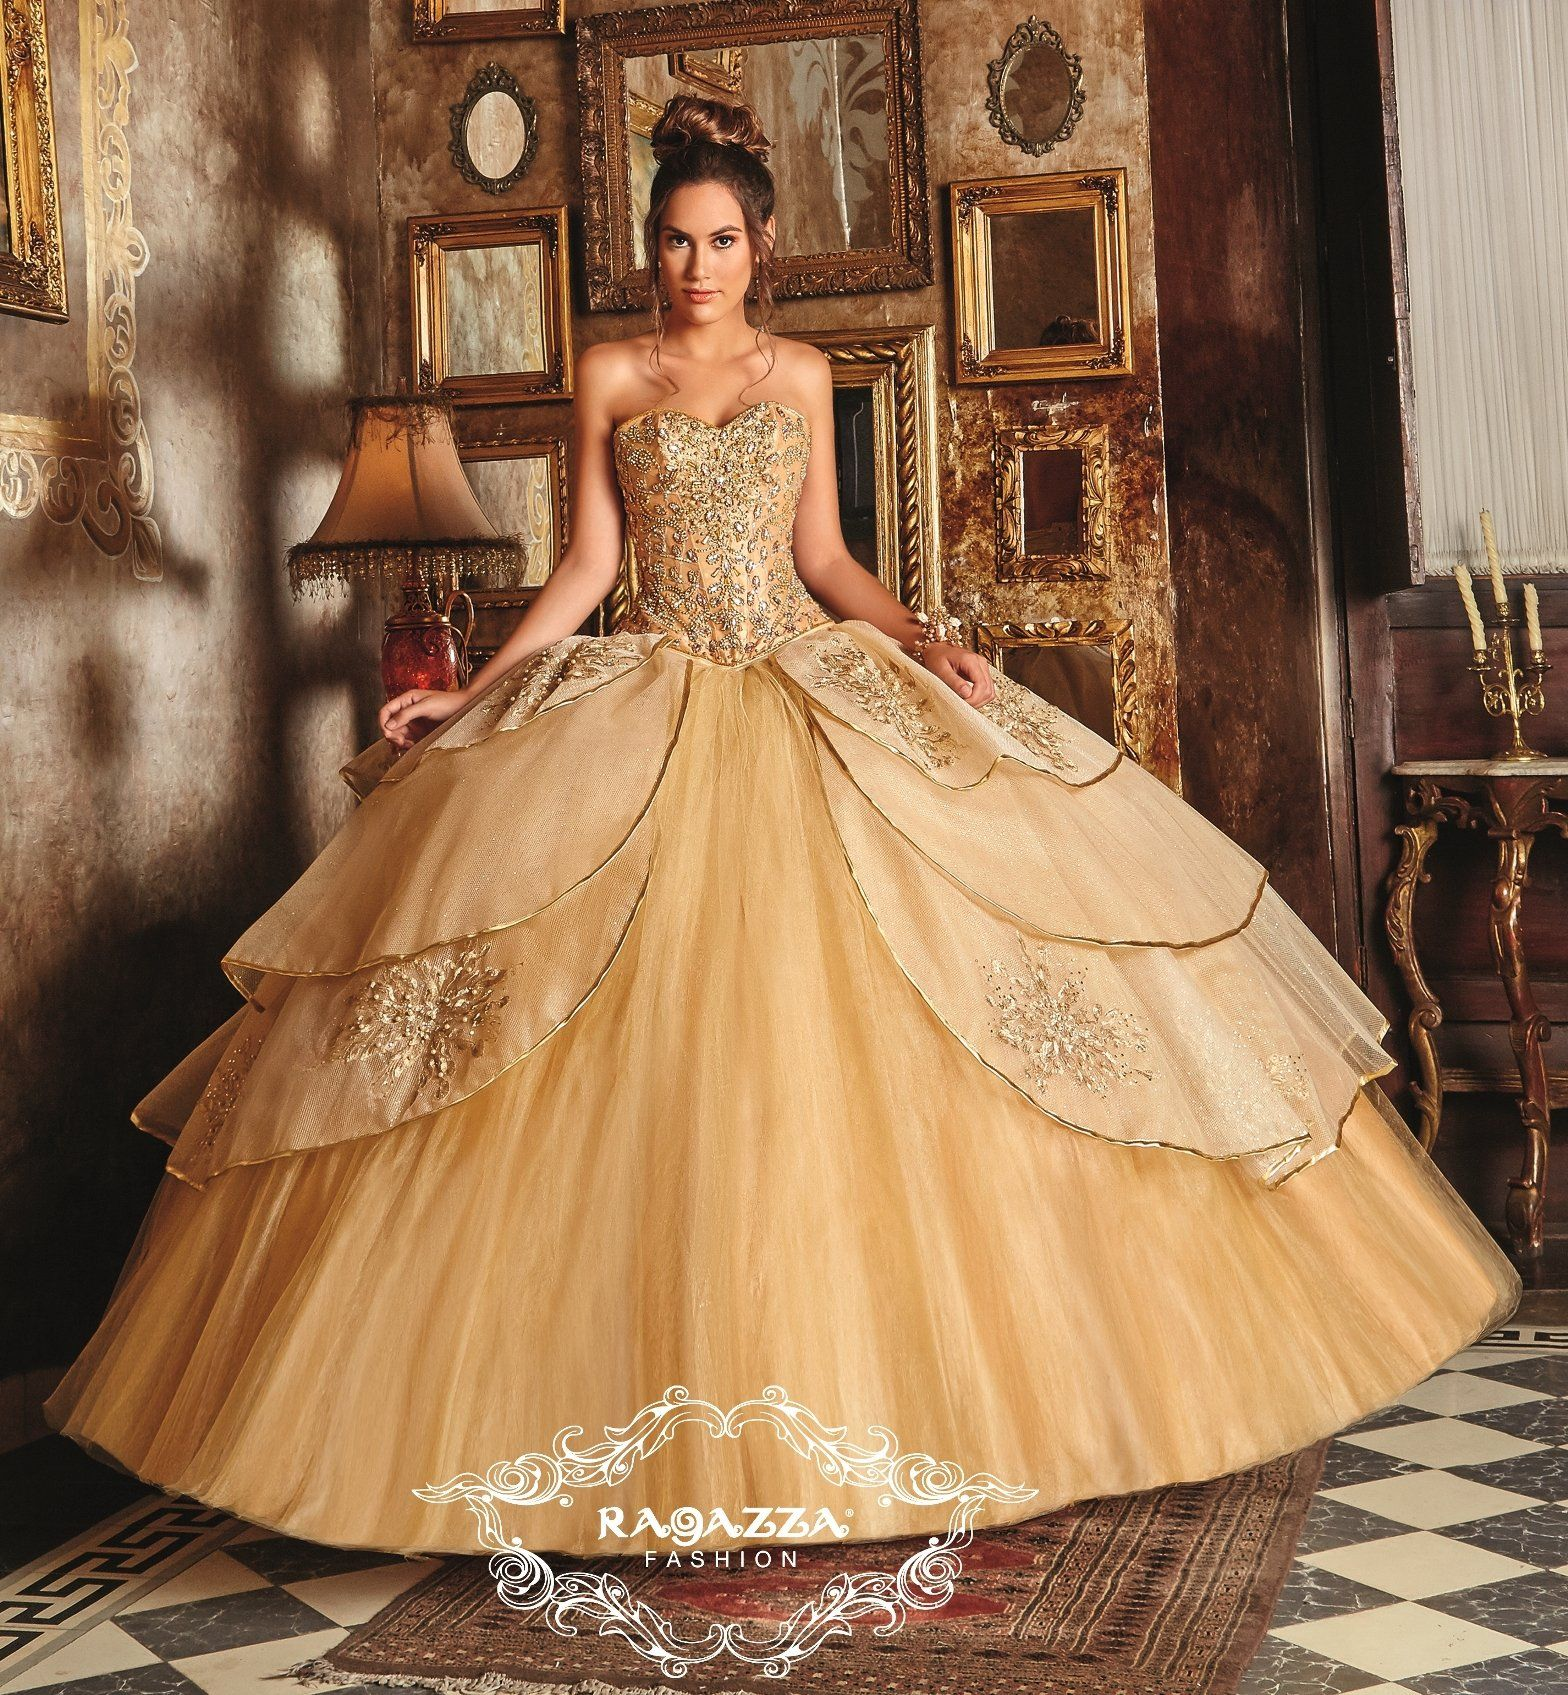 ba7c9e871 Embellished A-line Quinceanera Dress by Ragazza Fashion B84-384 in ...